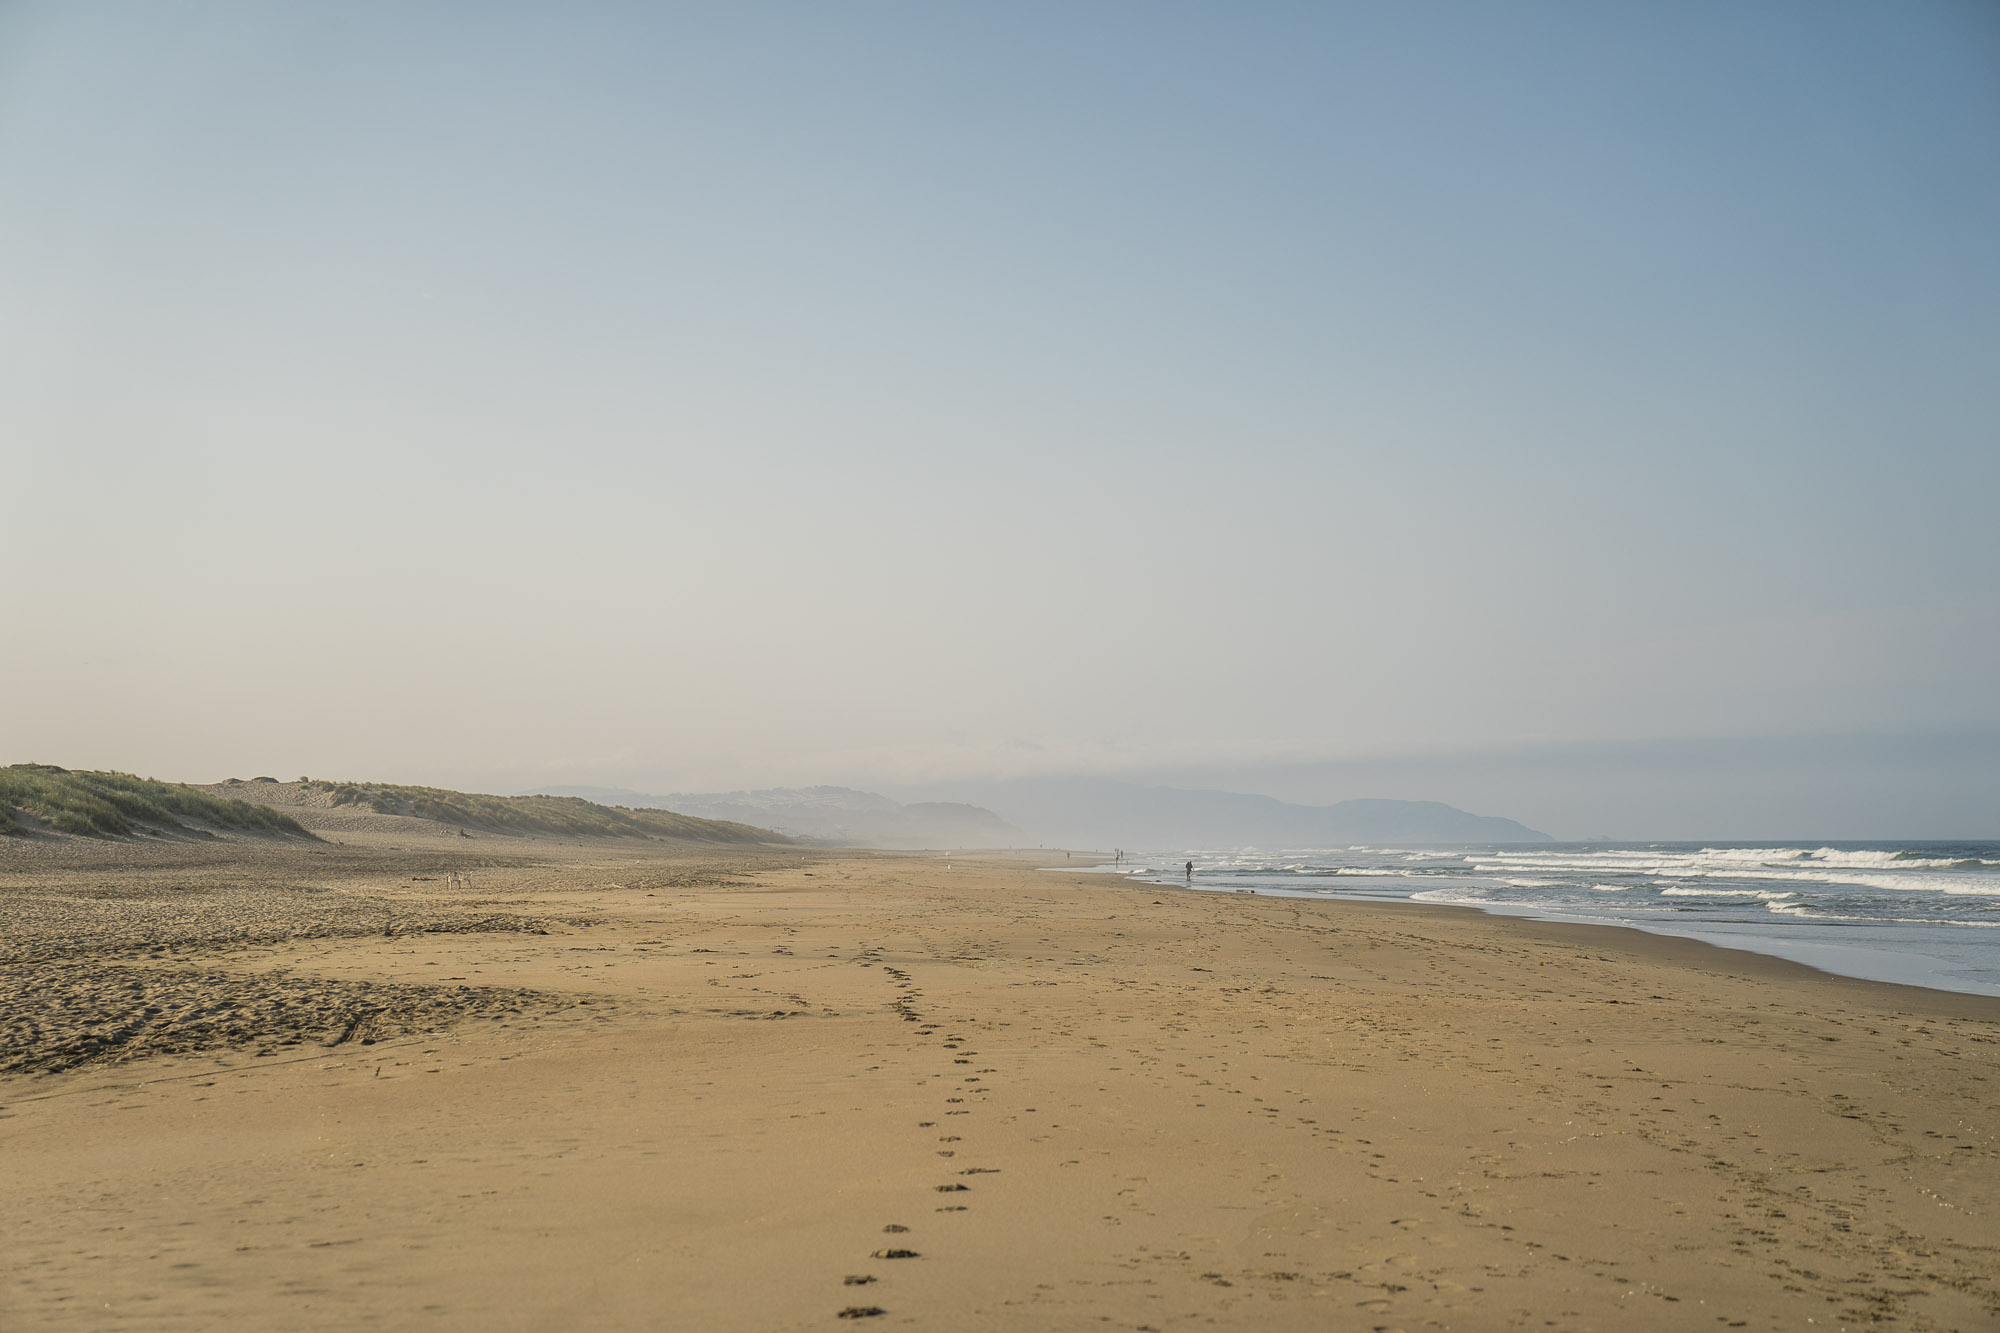 Ocean Beach with footprints in the sand in San Francisco.